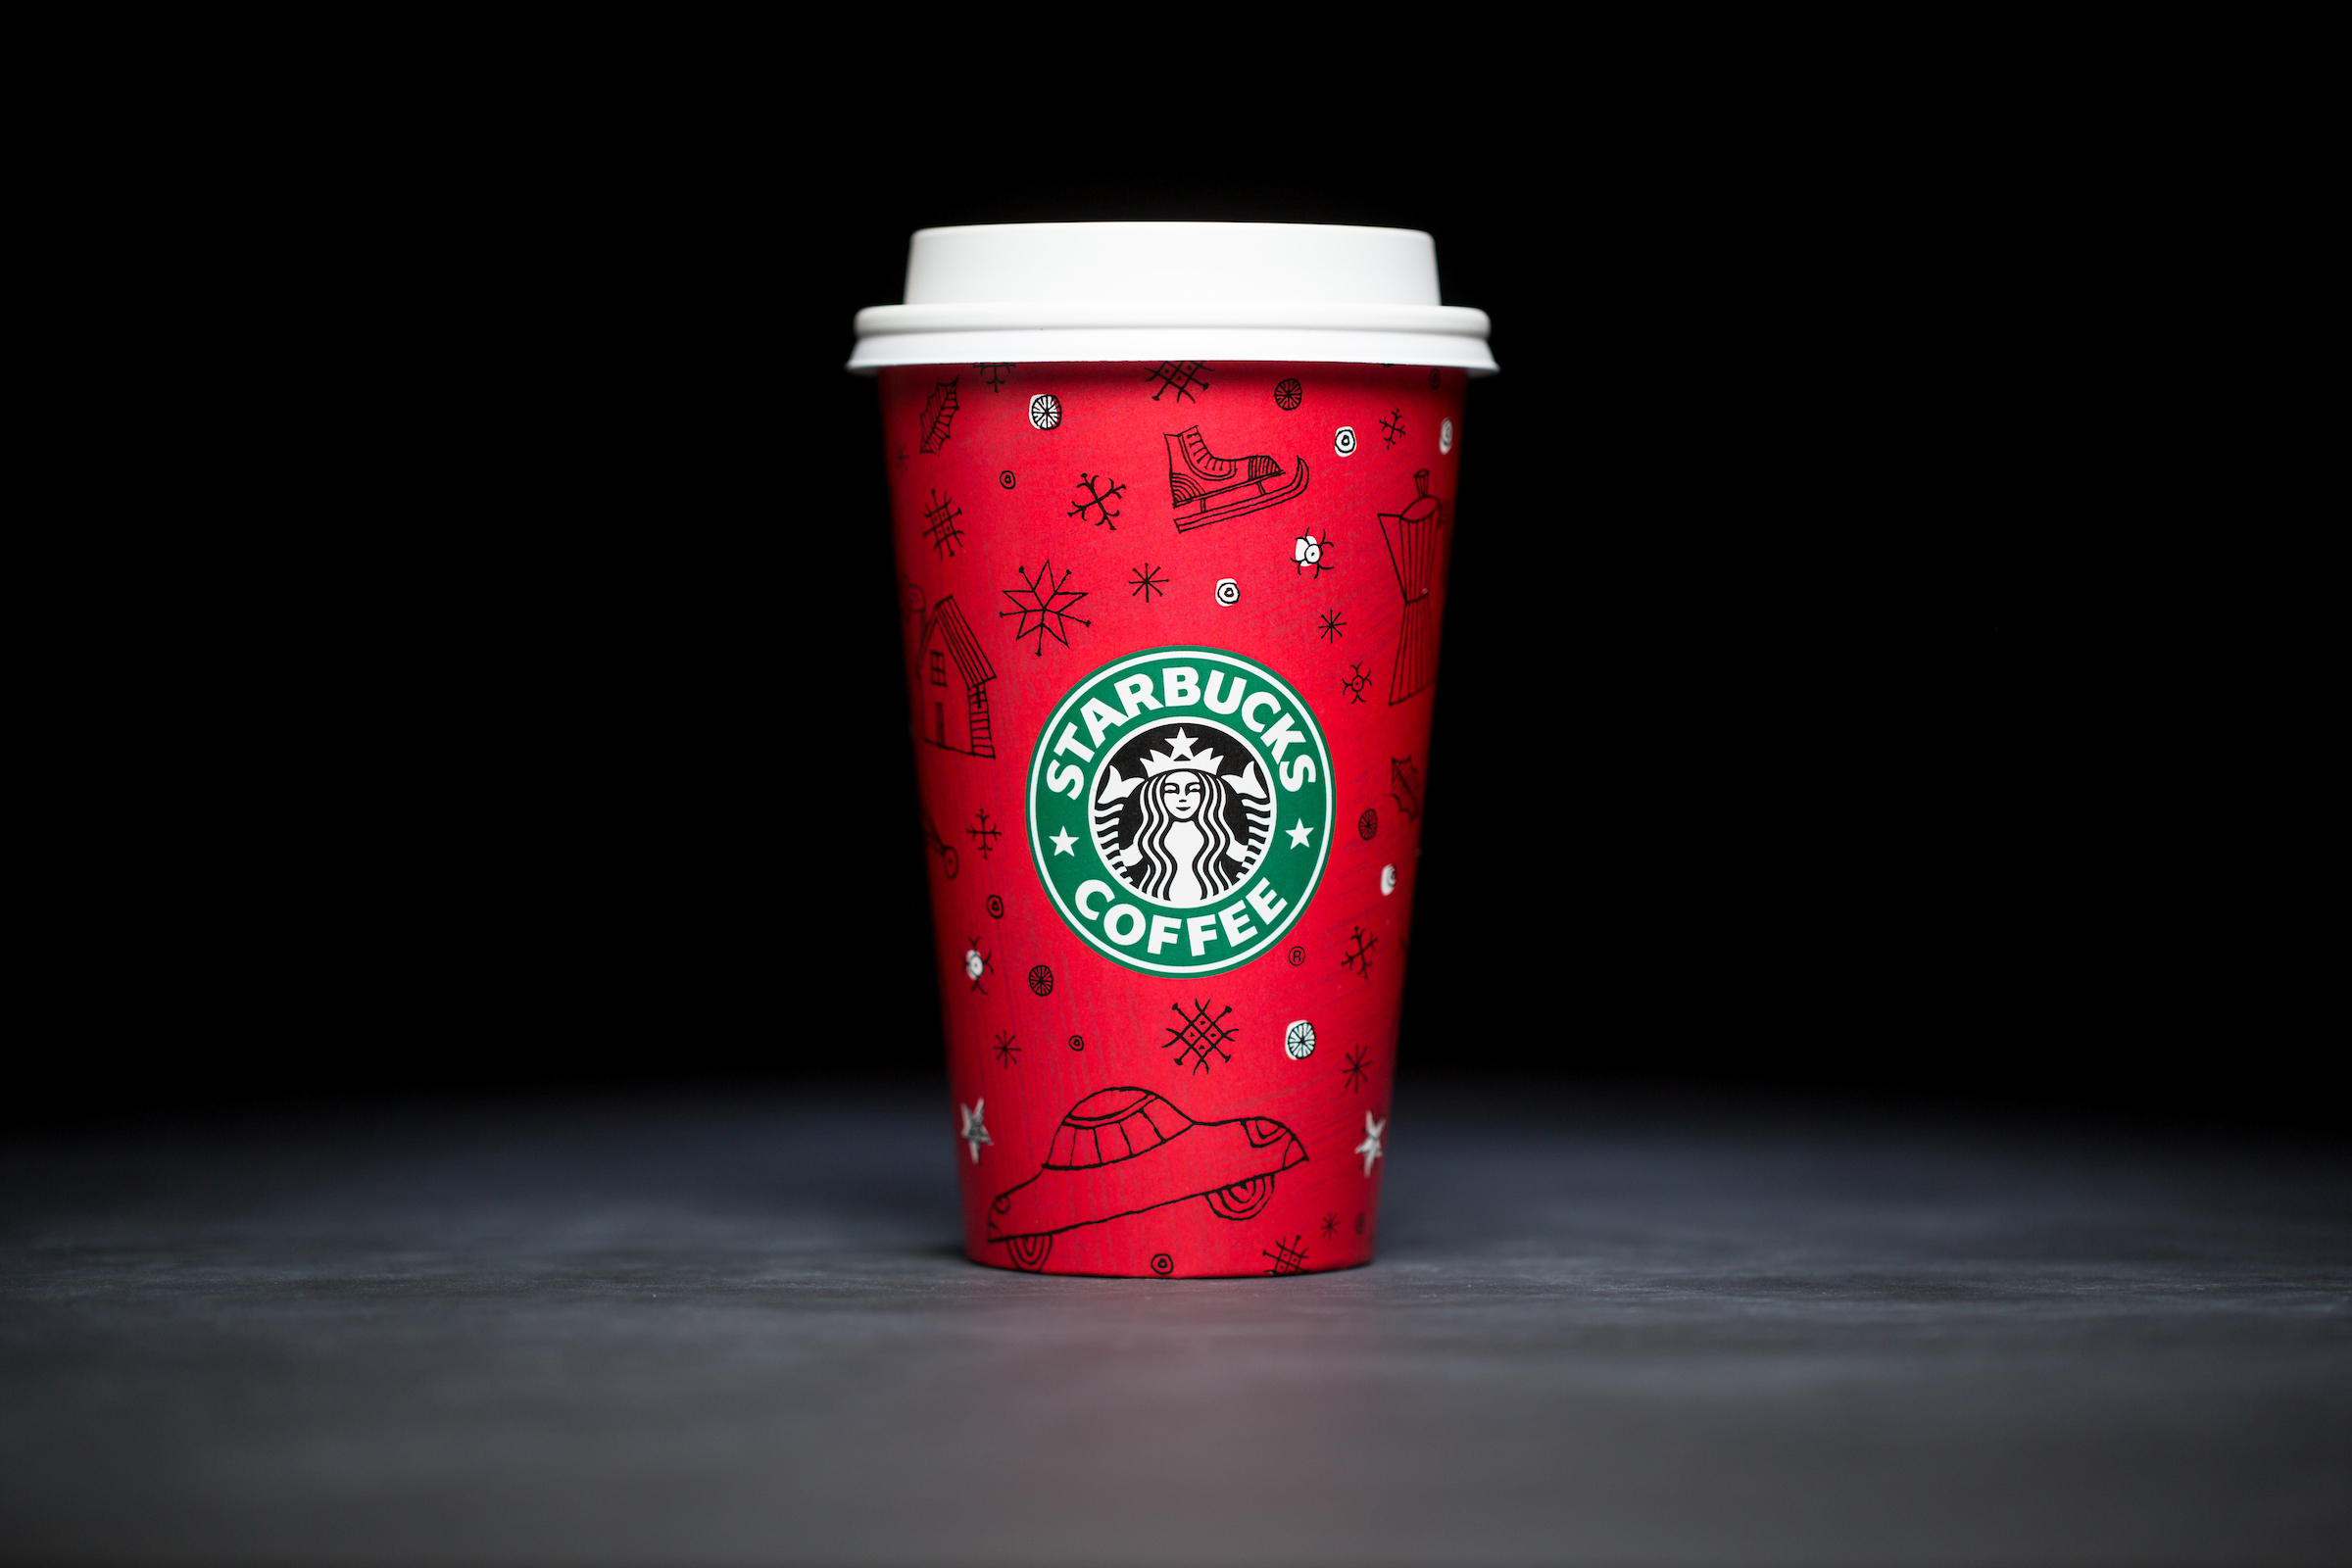 1999: For 20 years, Starbucks have released a range of holiday cup designs, most of them based around their world famous red cup. It's not easy to find the very first Starbucks holiday cups, which made their debut in stores in 1997. Few were saved, and electronic design files were lost in an earthquake in 2001. Even an Internet search is unyielding, with the cups having made their arrival long before the first selfie. But, we have them here! Click on for a photos of all 20 holidays cup designs. (Image: Joshua Trujillo/Cover Images)